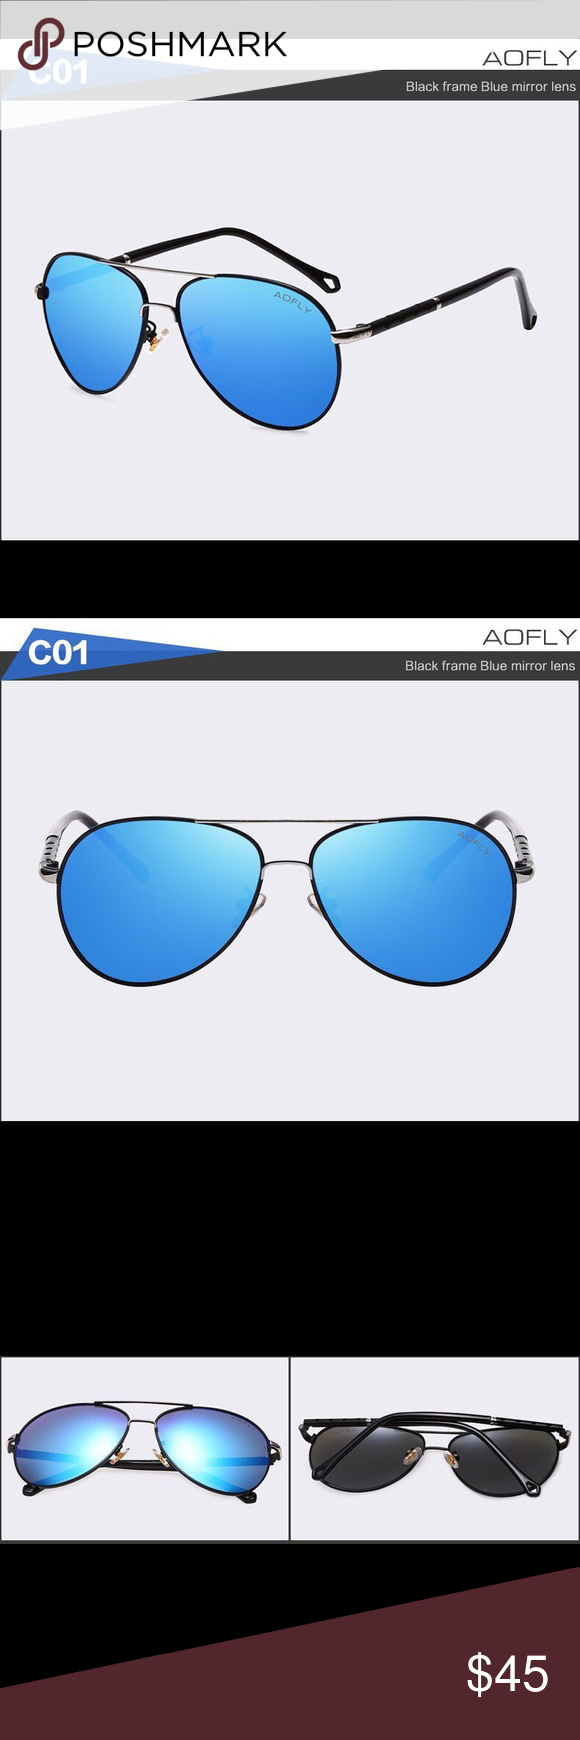 2ed78e1a408 AOFLY Authentic Men s Aviator Sunglasses High quality material black metal  frame with blue mirrored lenses.